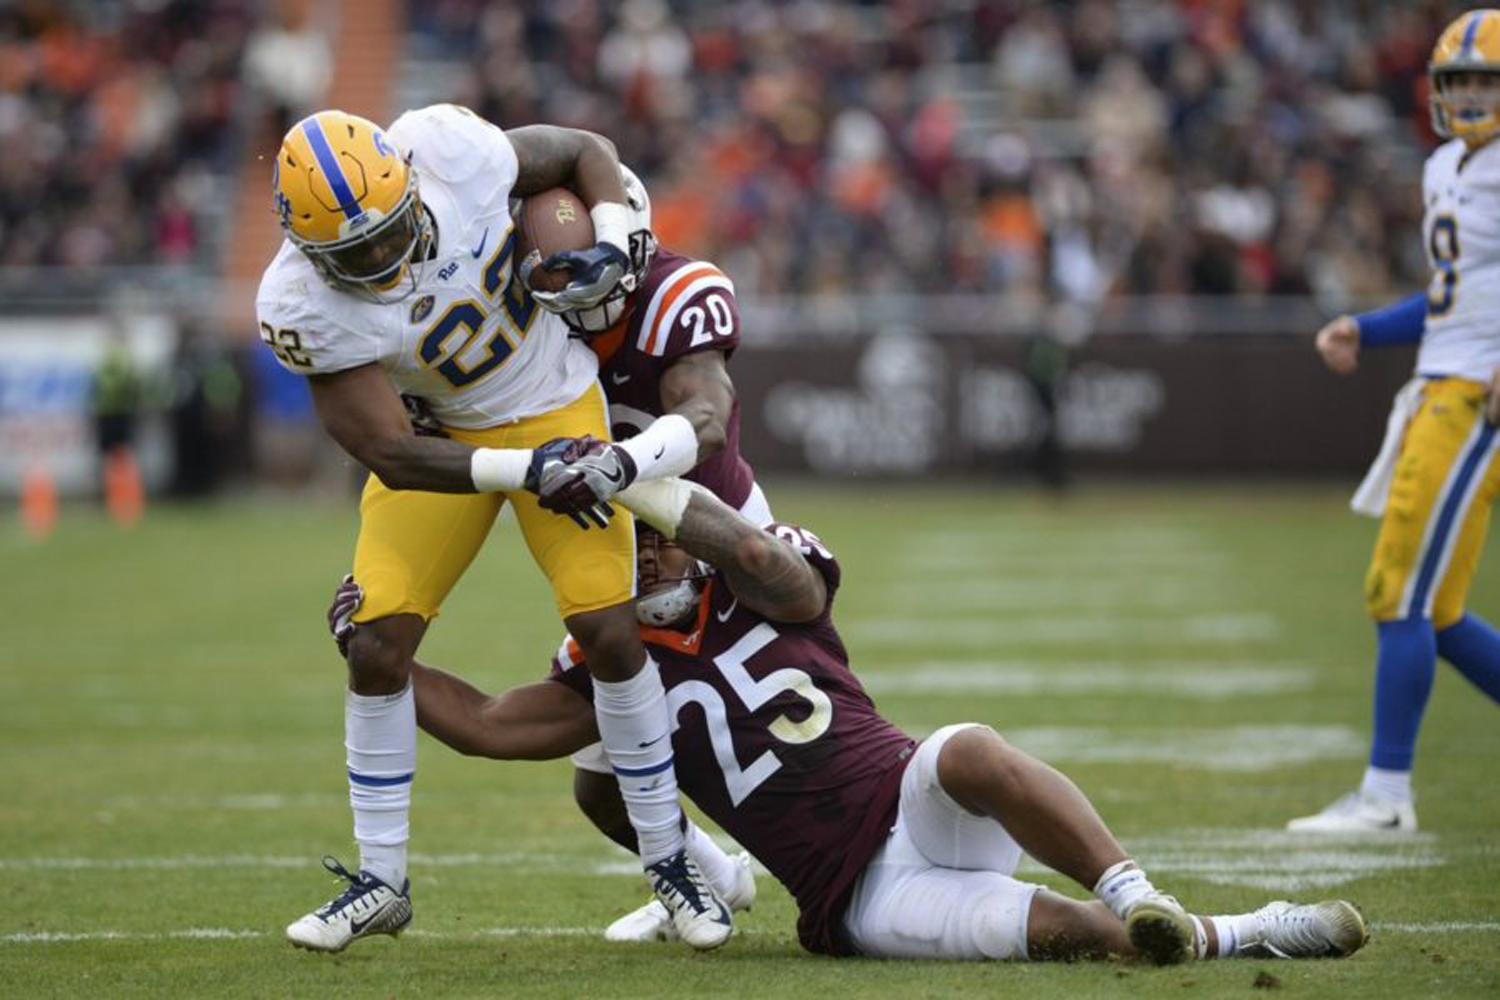 S_What are the Odds: Darrin Hall is taken down by a Virginia Tech player as he runs the ball for Pitt during the teams' 2017 game. TPN file photo